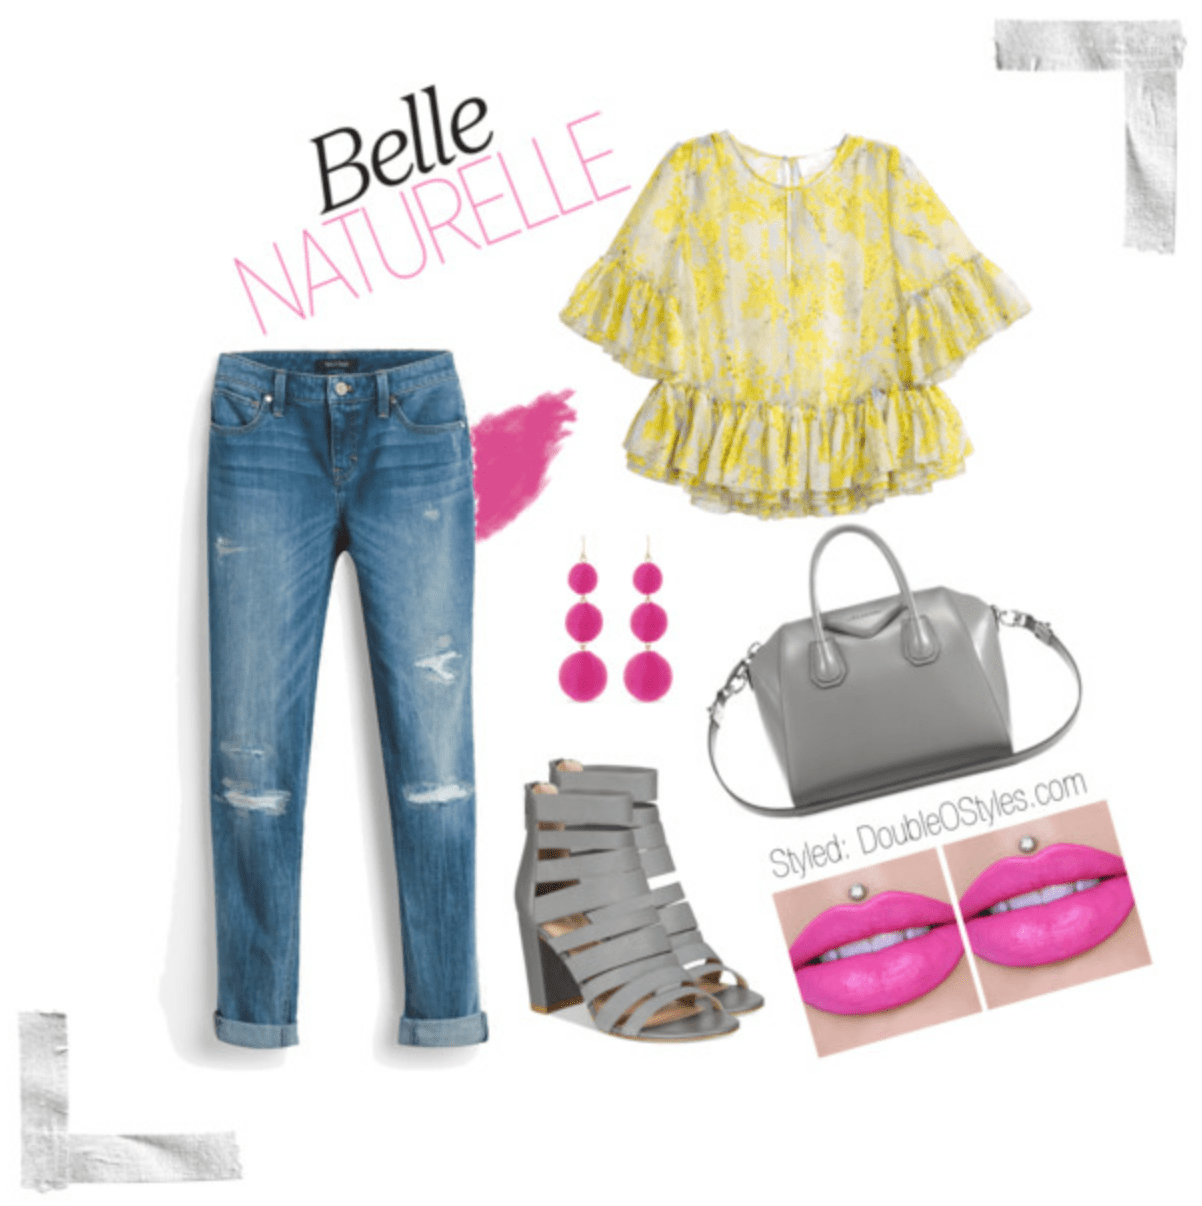 In the #Spring flowing through with my poppin' #Pink lips! #womenstyle #womensFashion #polyvorefashion #jeans #springstyle Belle Naturelle doubleostyes Created by doubleostyes Yesterday. 4 views. In the #Spring flowing through with my poppin' #Pink lips! #womenstyle #womensFashion #polyvorefashion #jeans #springstyle